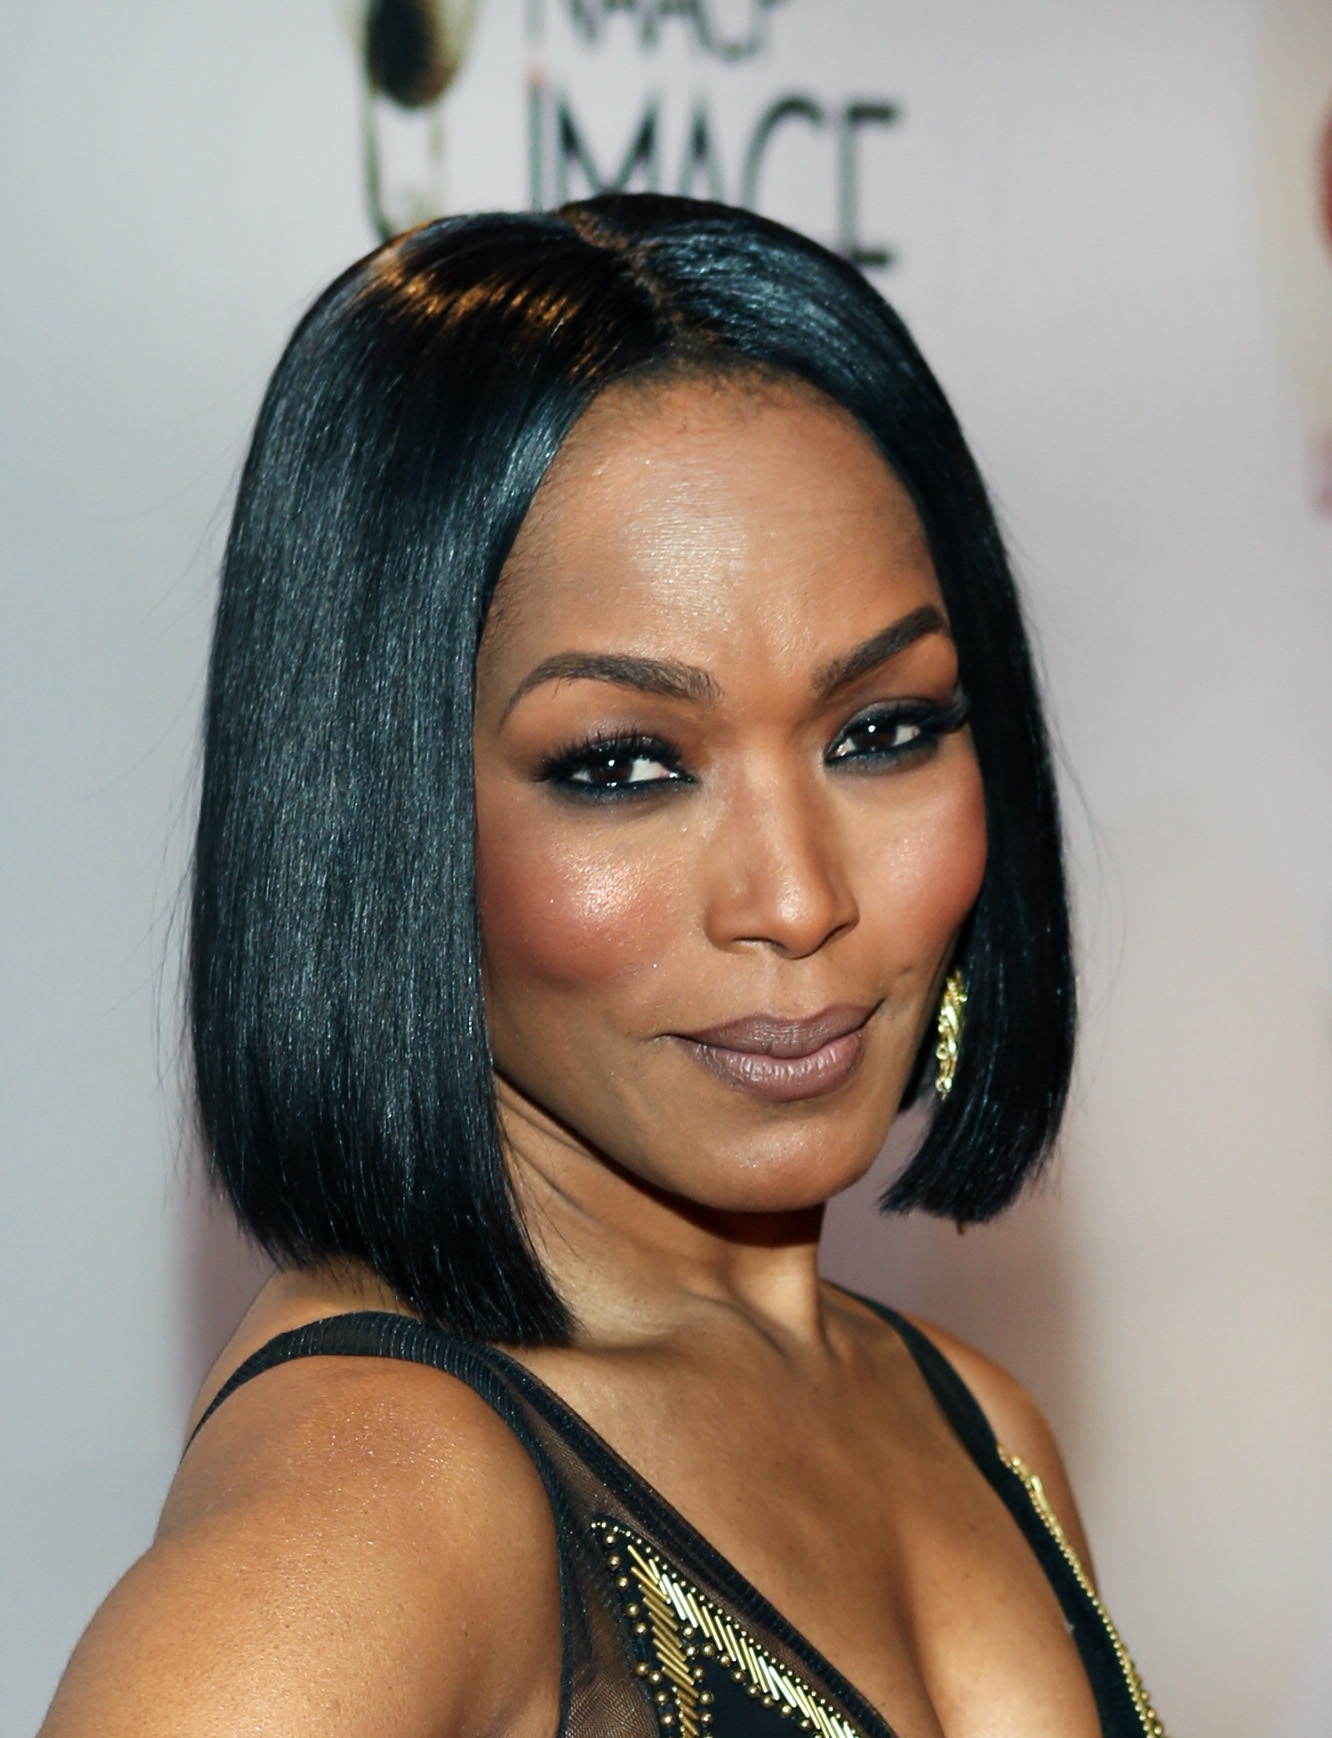 20 Best Hairstyles For Women Over 50 Celebrity Haircuts